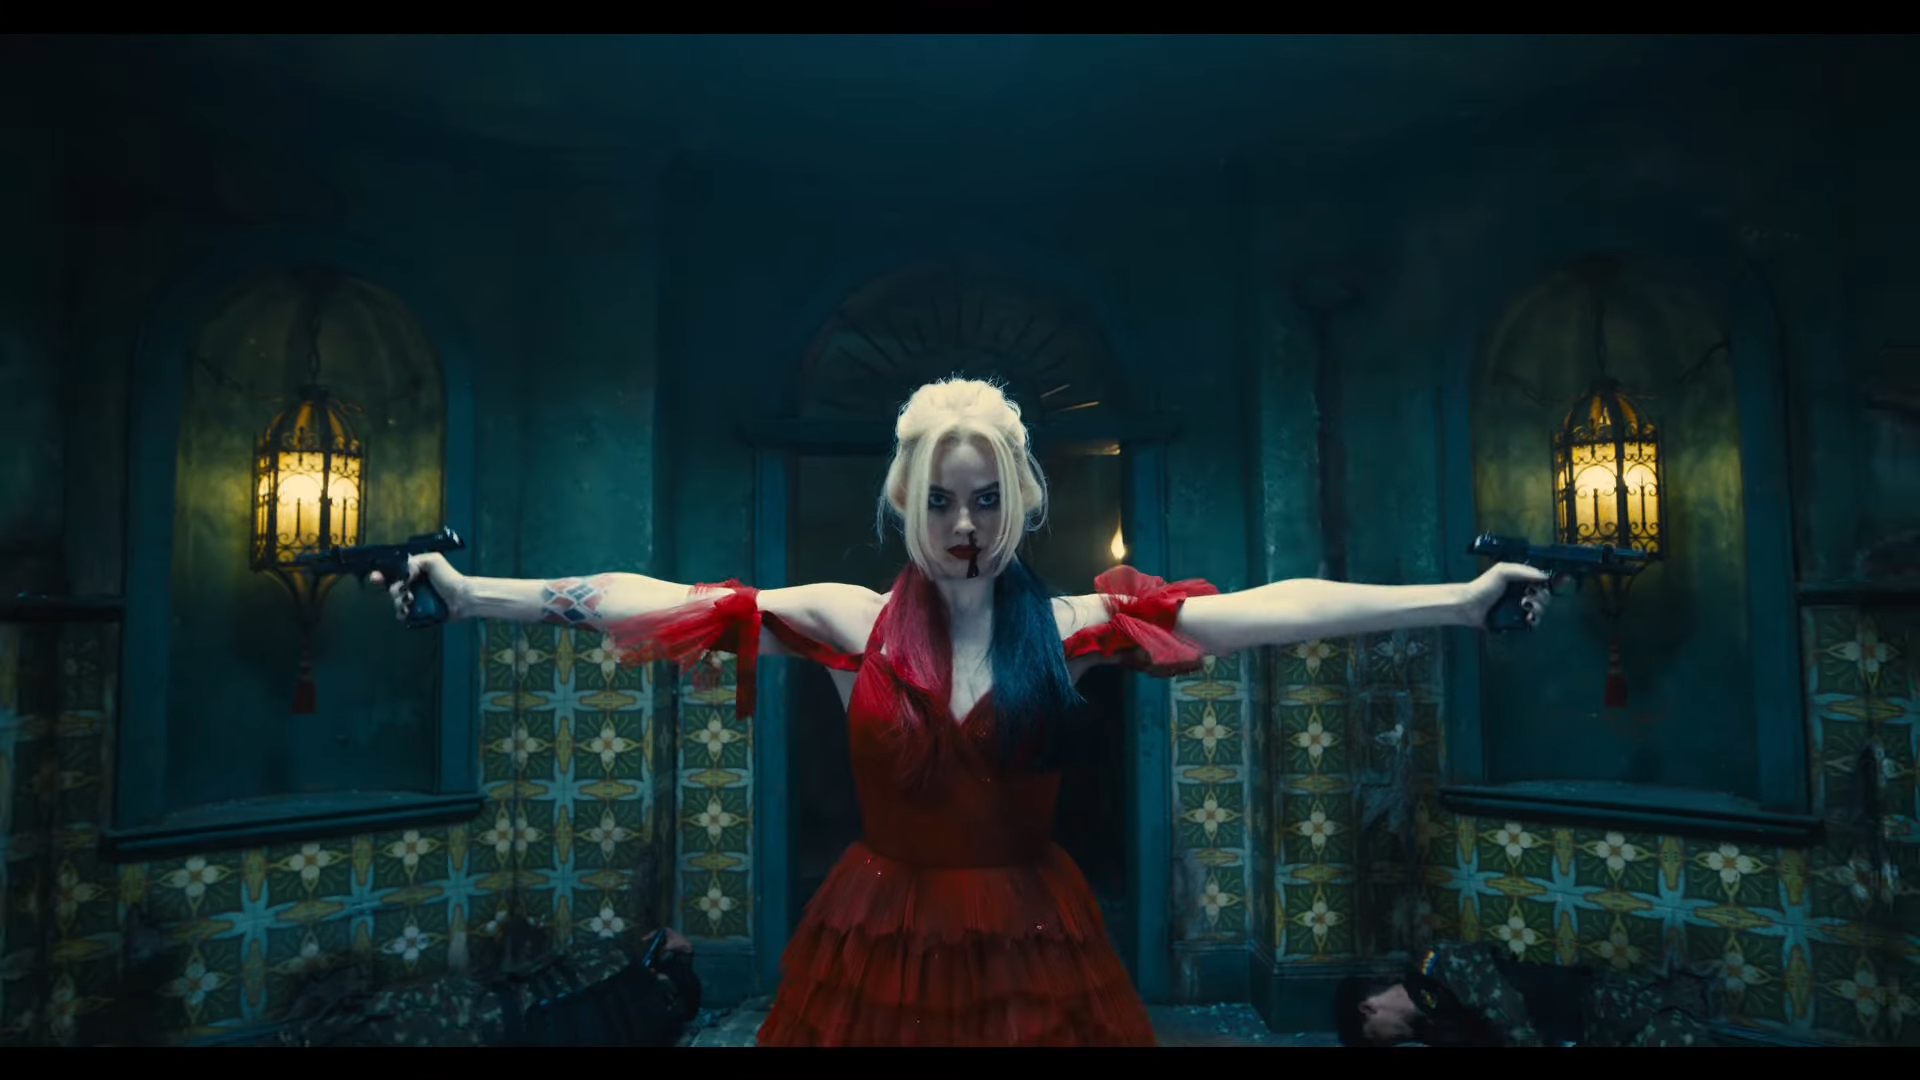 THE-SUICIDE-SQUAD-Rebellion-Trailer-1-5-screenshot-122